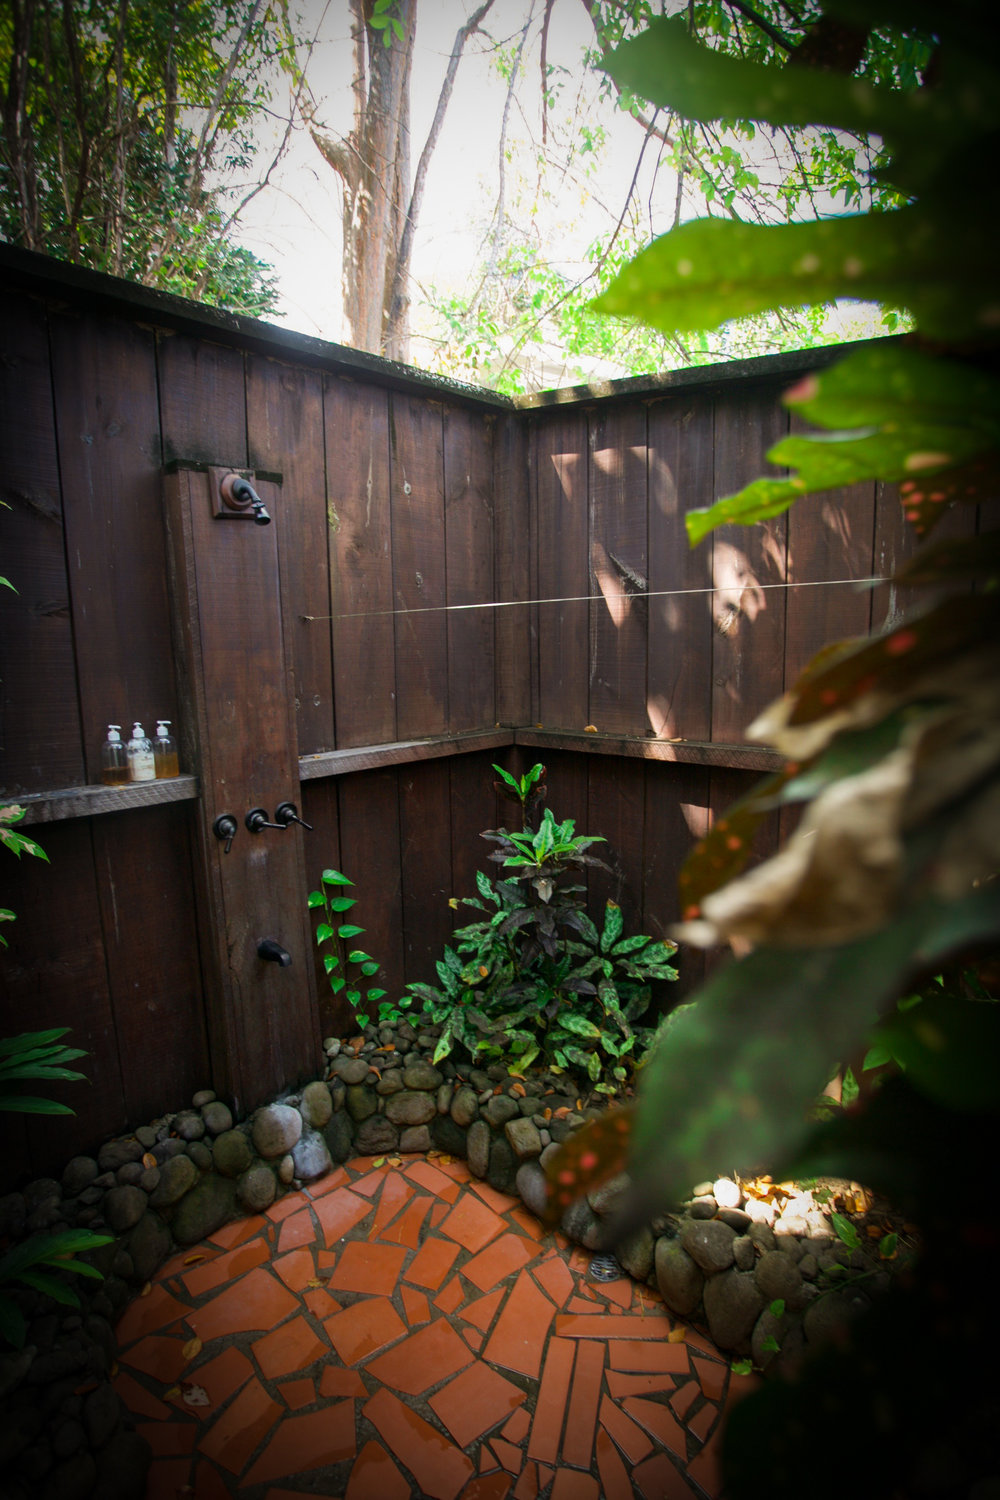 Ti Kaye Resort's private outdoor spa shower we will miss bathing in the warmth of the sun every morning and taking a relaxing evening rinse under the moonlit sky. Oh and they make their own spa shower products provided to guests during their stay inspired by the islands gifts of coconut, chocolate, and other fruits and herbal infusions. Photography Courtesy of The Aisle Photography